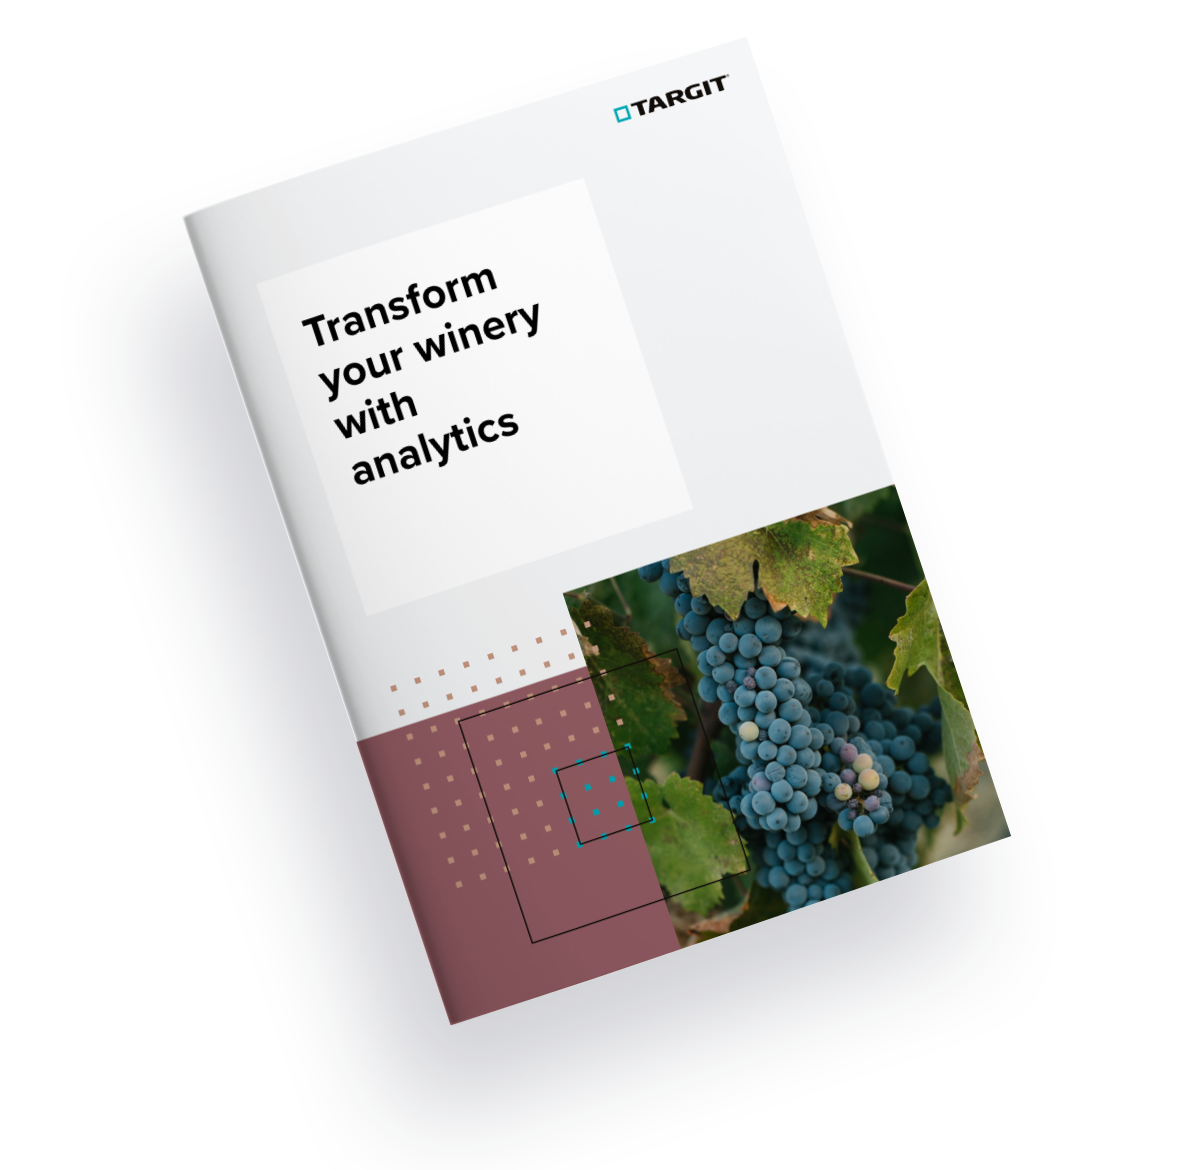 Transform your winery with analytics